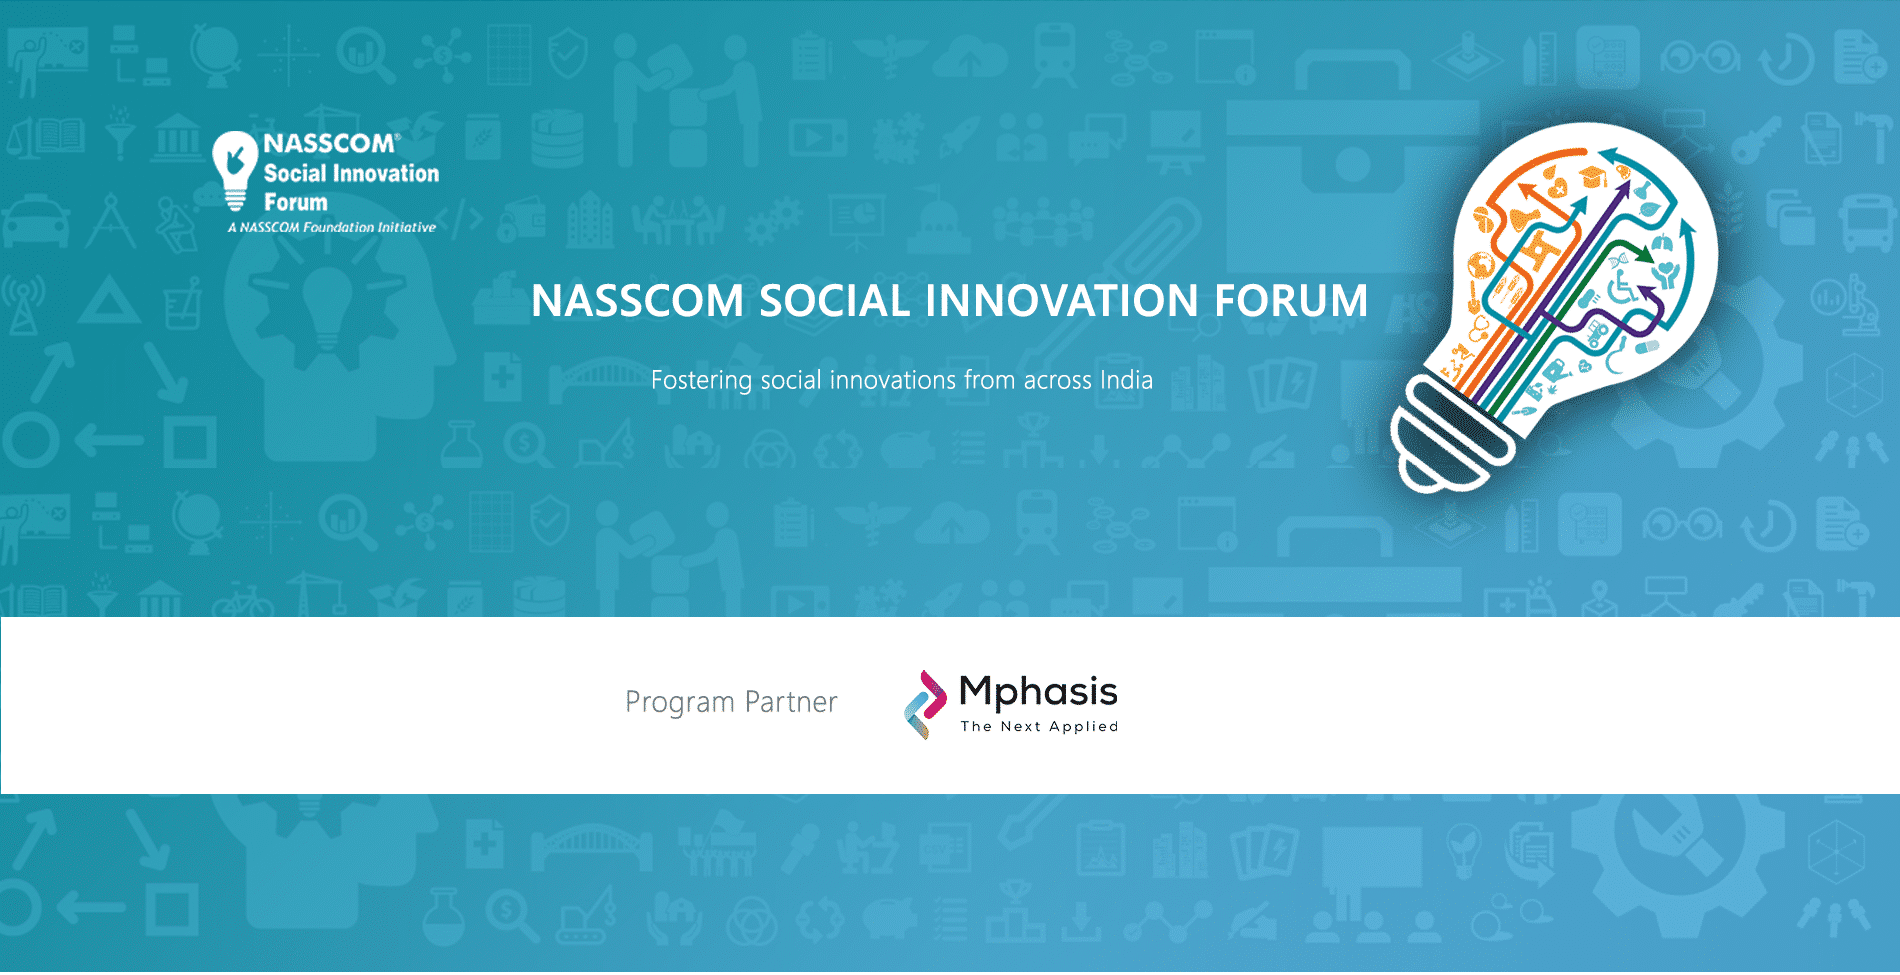 NASSCOM Foundation and Mphasis launch NASSCOM Social Innovation Forum (NSIF) to support and mentor India's best Social Innovations